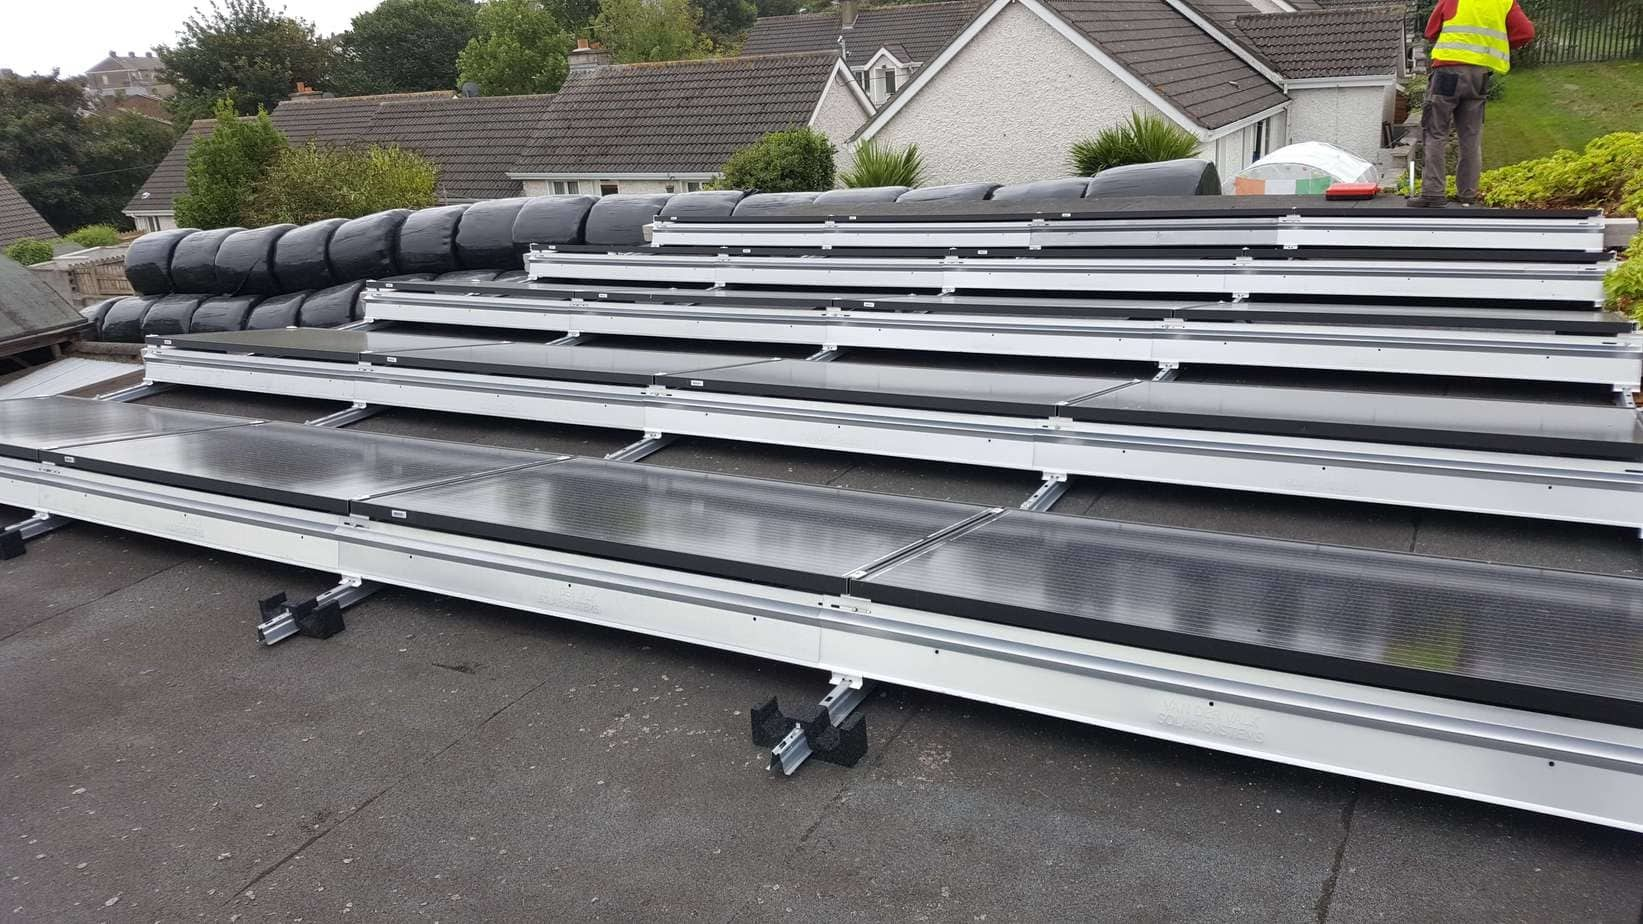 11kWP Flat Roof Railing System Development in progress at Wicklow